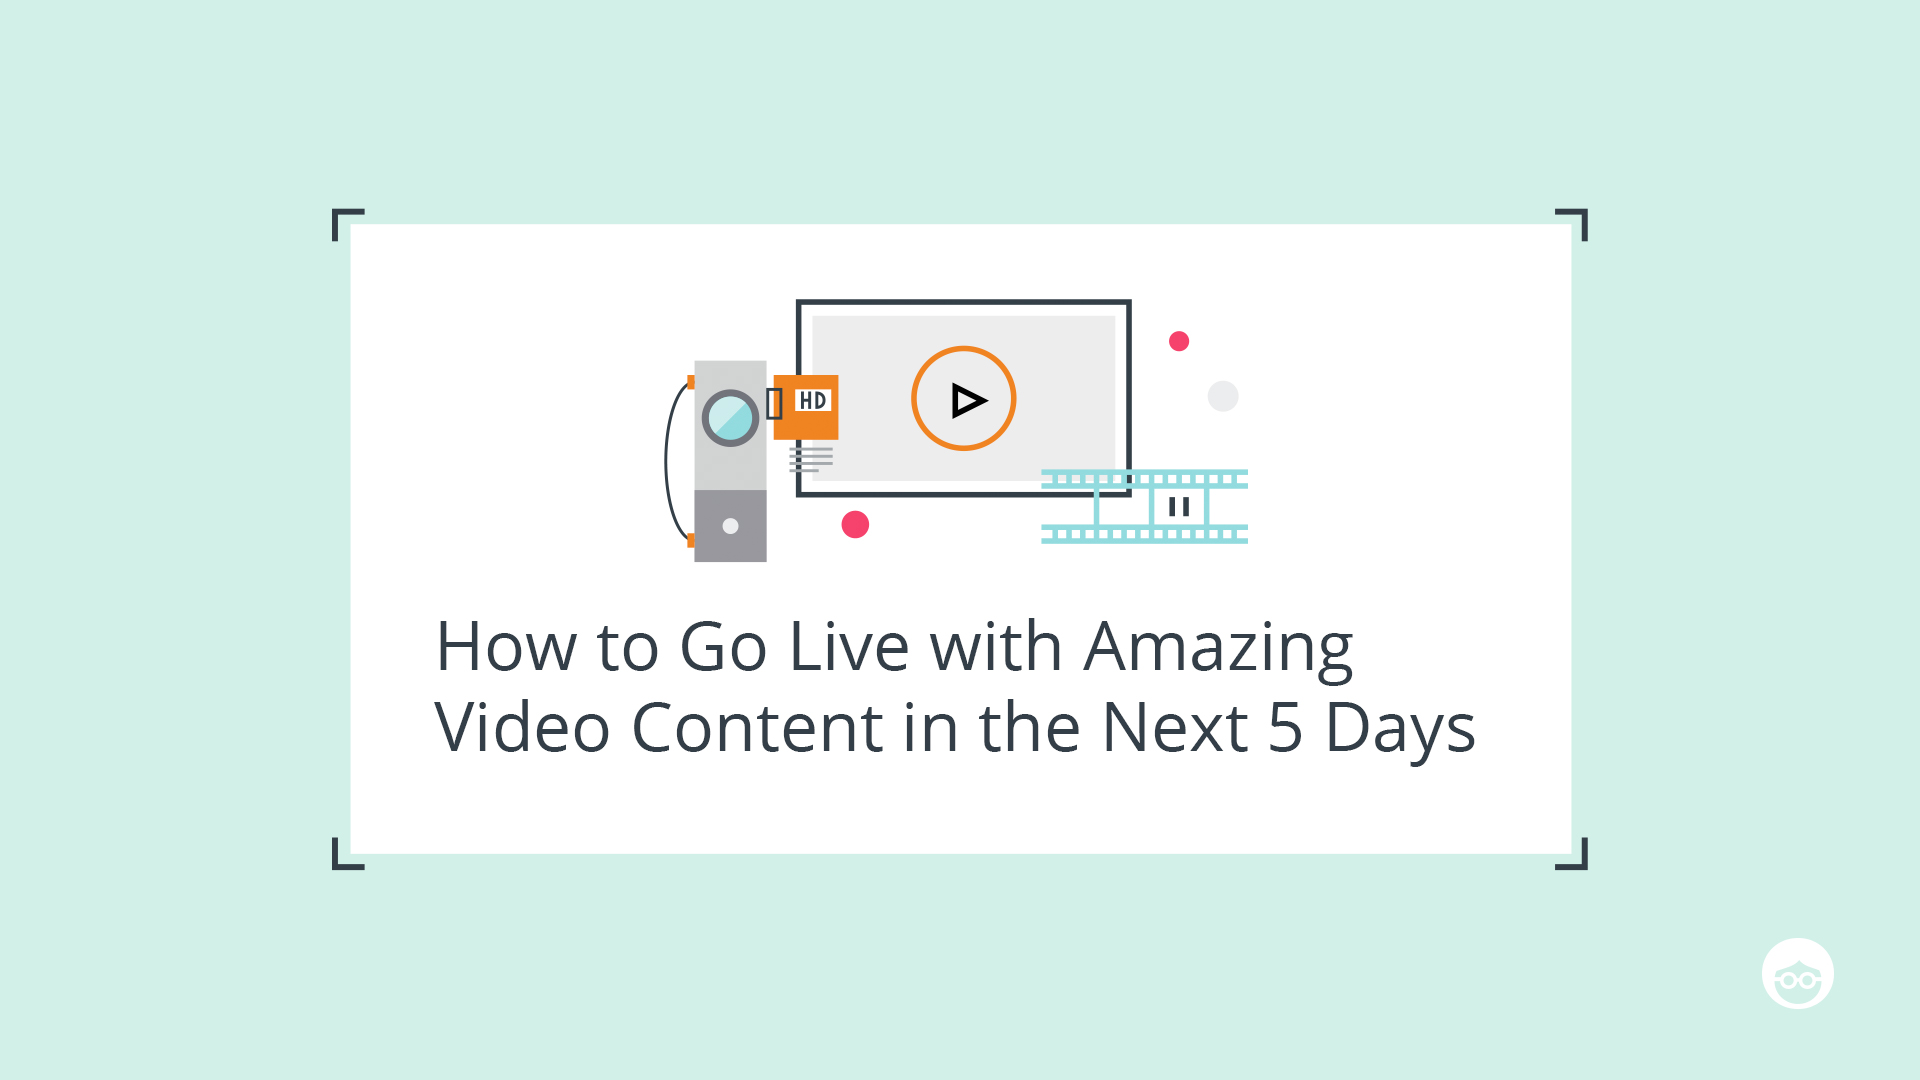 How to Go Live With Amazing Video Content